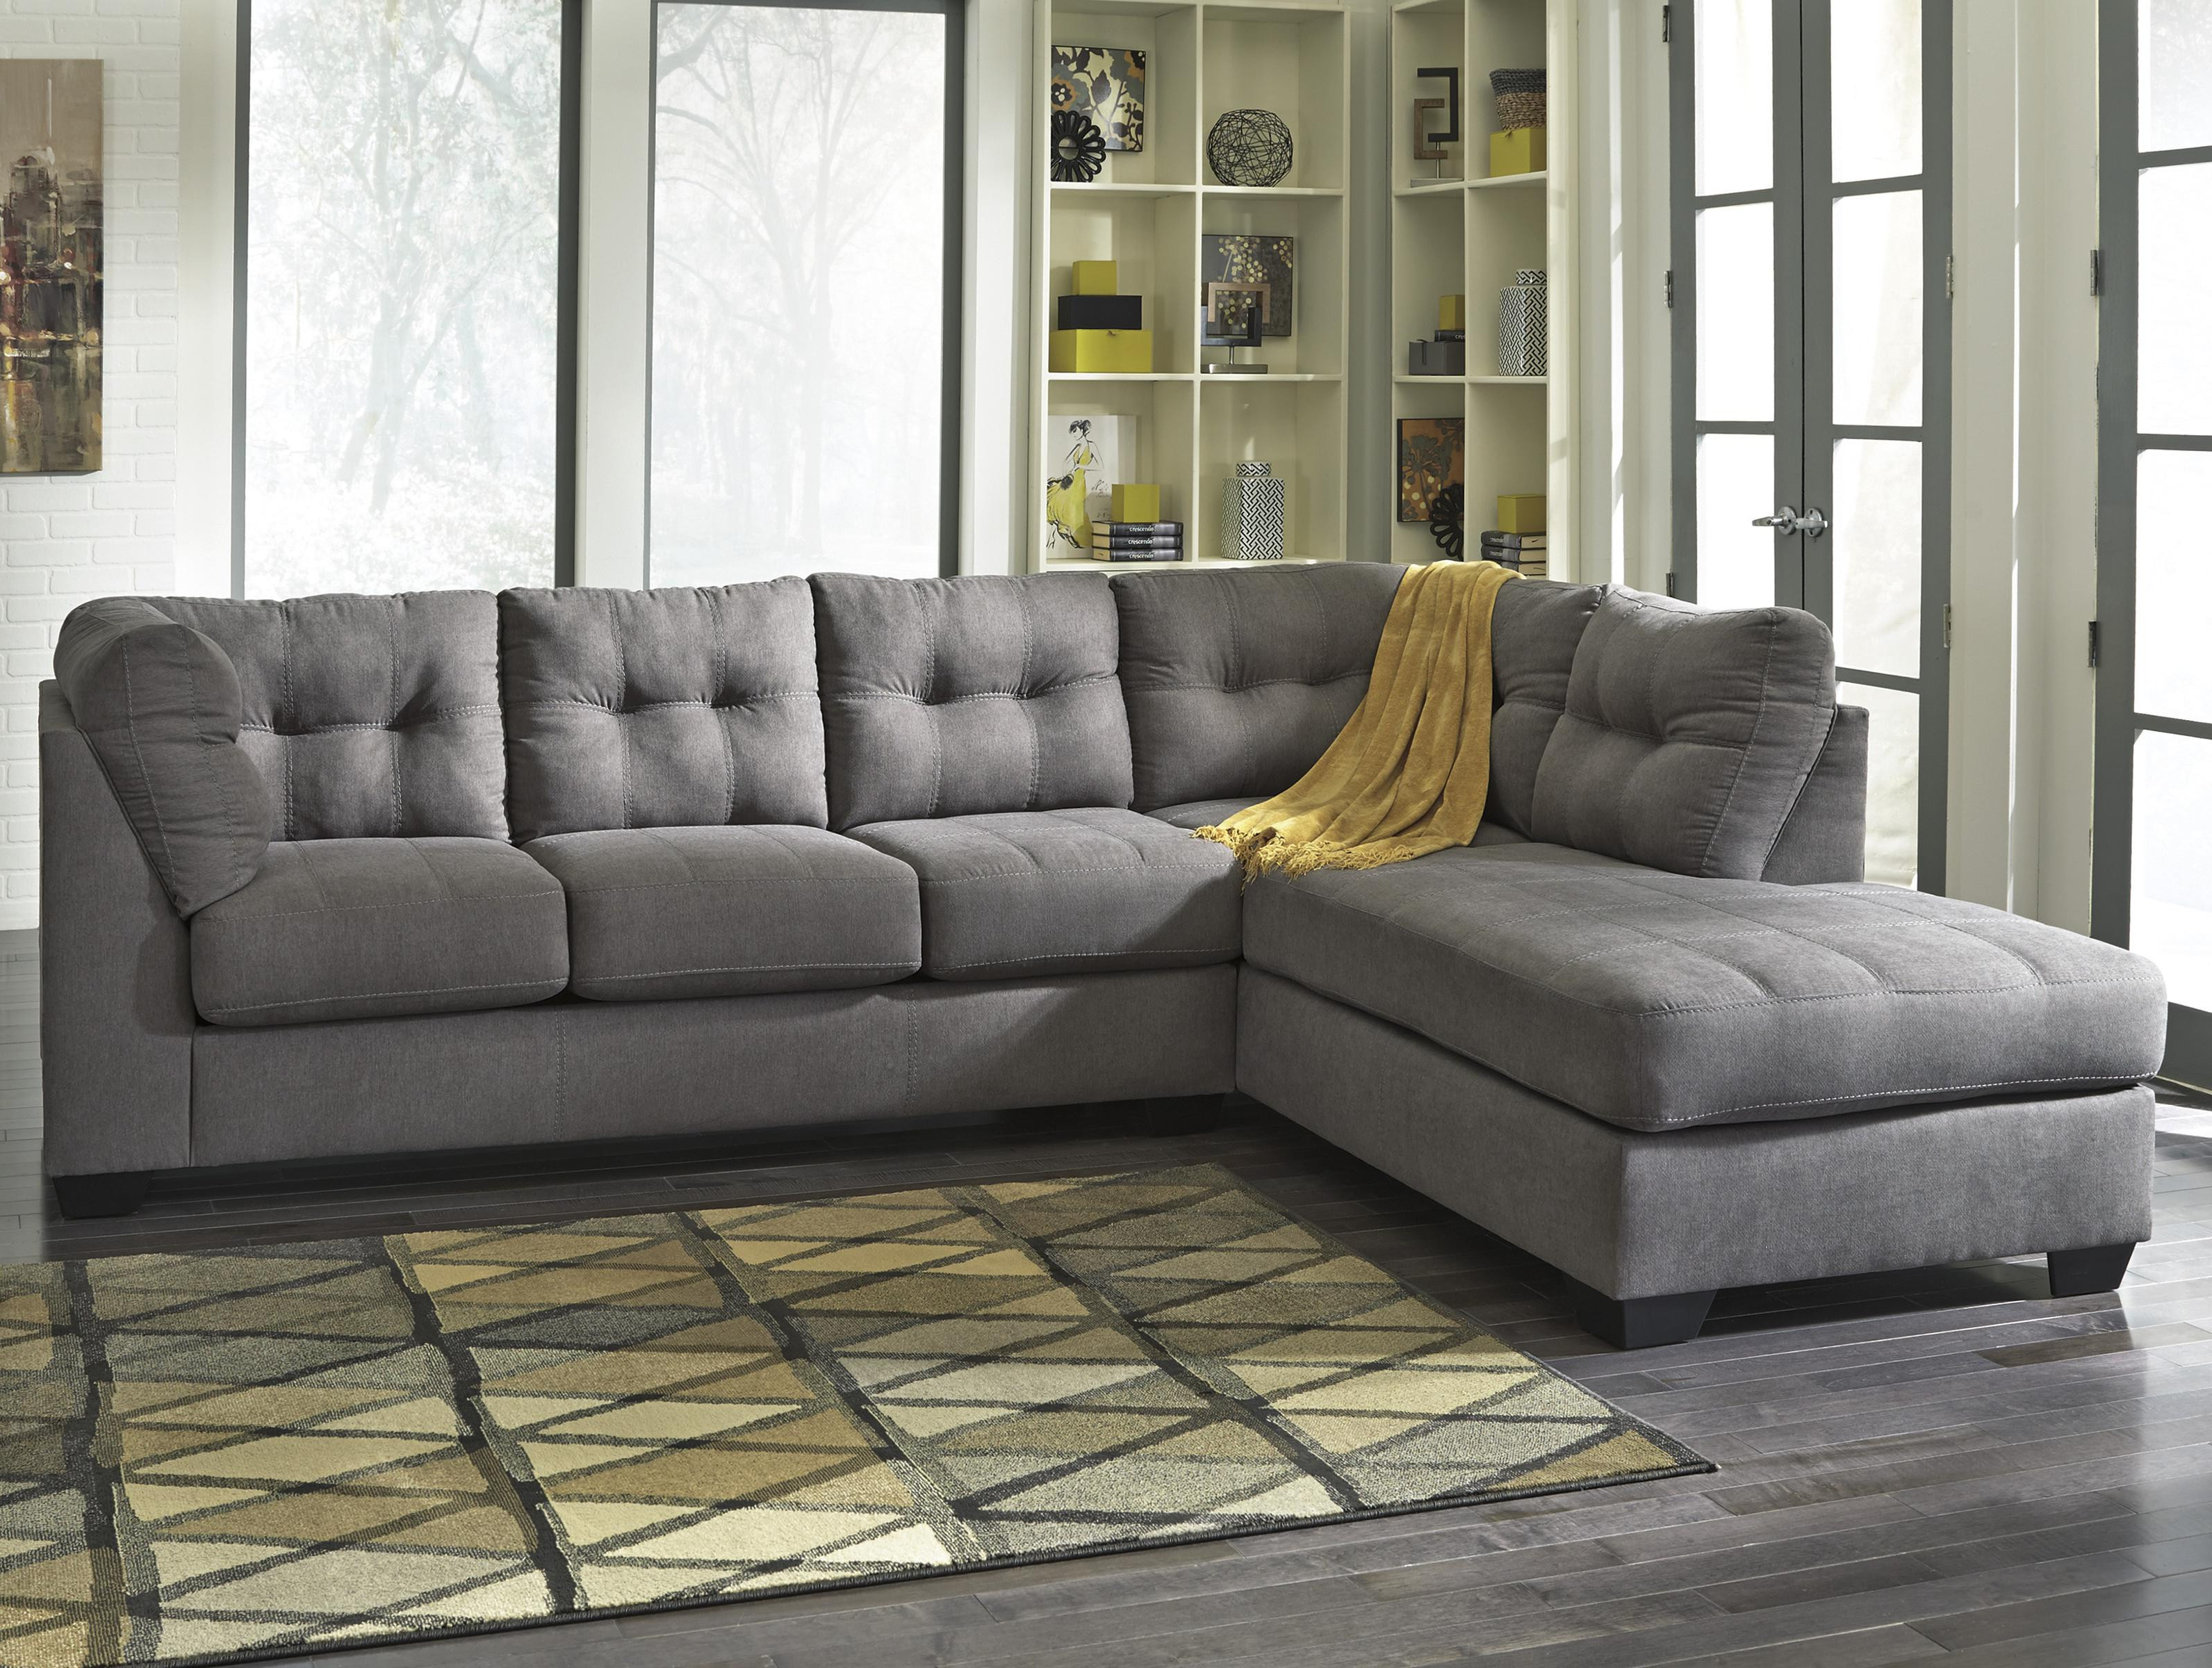 Favorite New 2 Piece Sectional With Chaise Lounge – Buildsimplehome Throughout Kerri 2 Piece Sectionals With Raf Chaise (View 4 of 20)